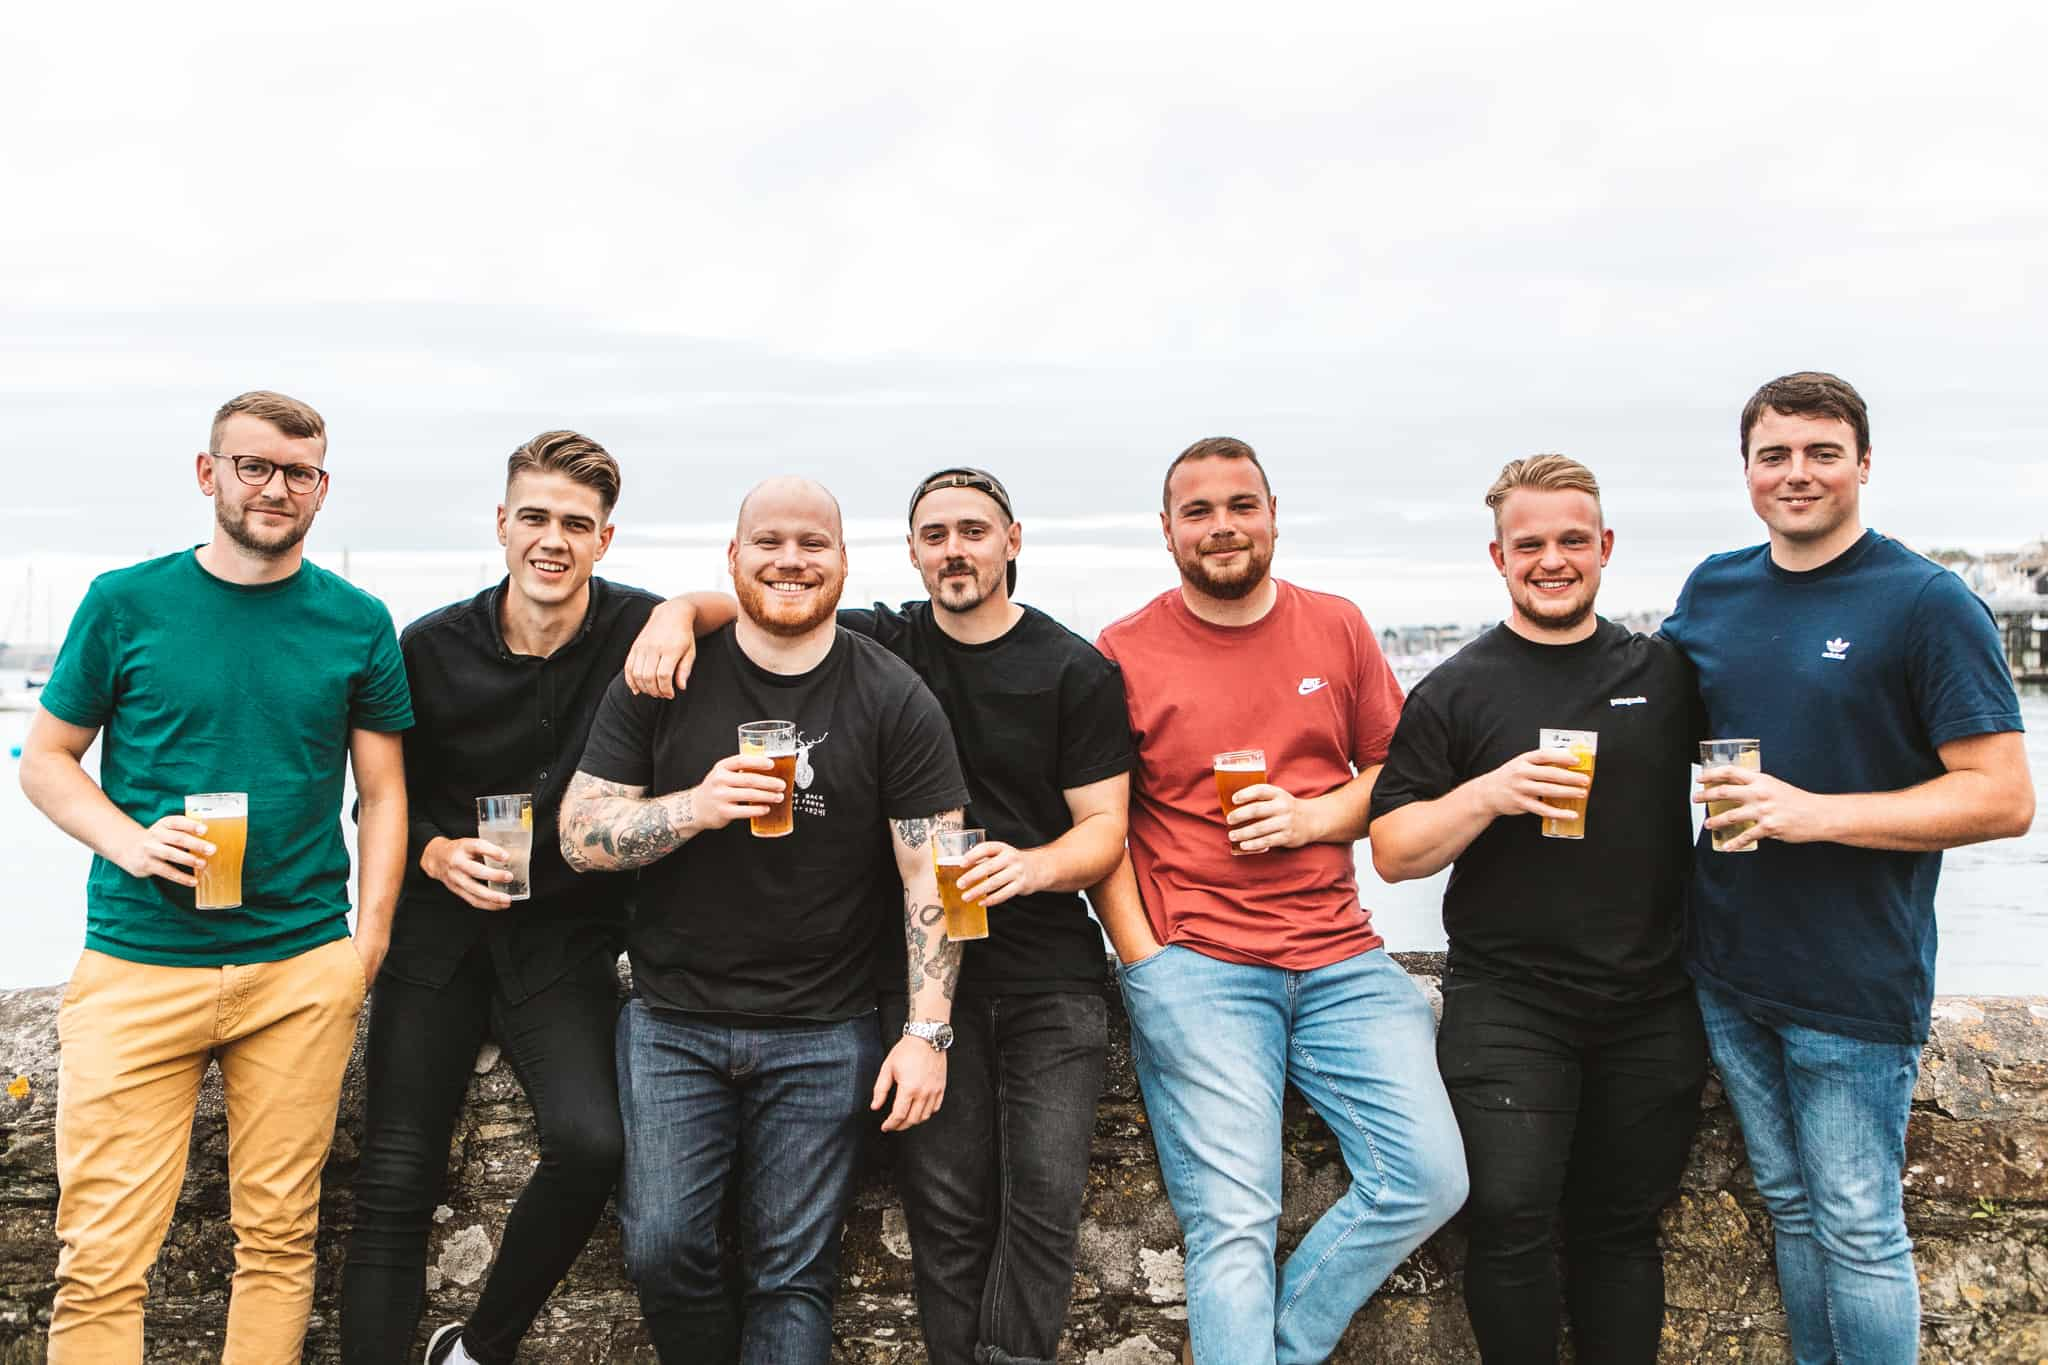 falmouth-week-at-the-working-boat-pub-live-music-events-falmouth-cornwall (22 of 114)